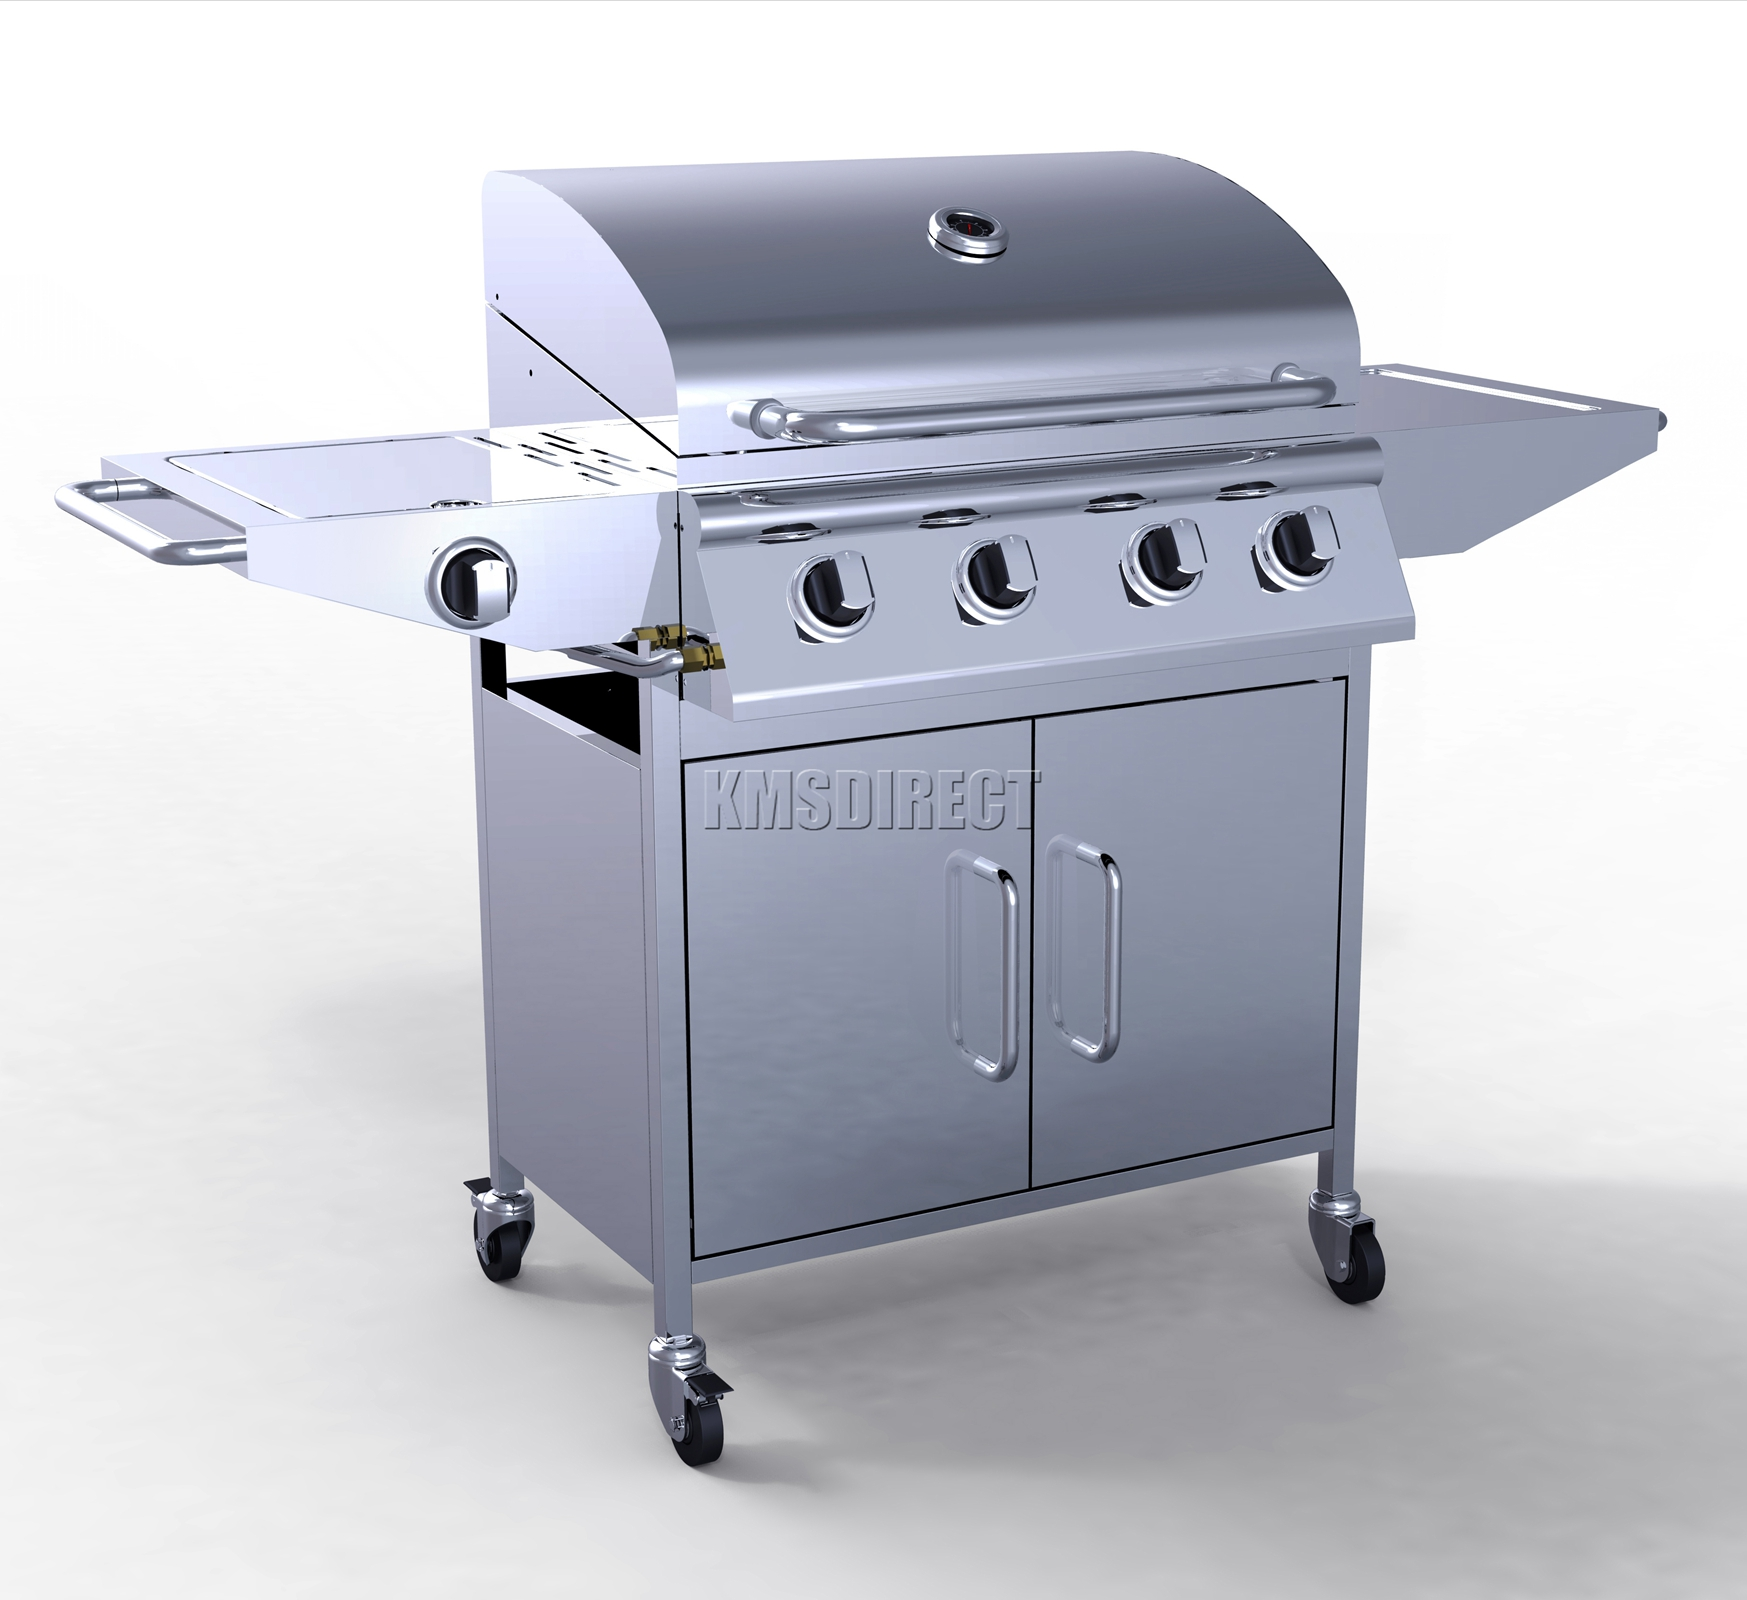 4 burner bbq gas grill edelstahl grill 1 seite silber outdoor tragbar ebay. Black Bedroom Furniture Sets. Home Design Ideas